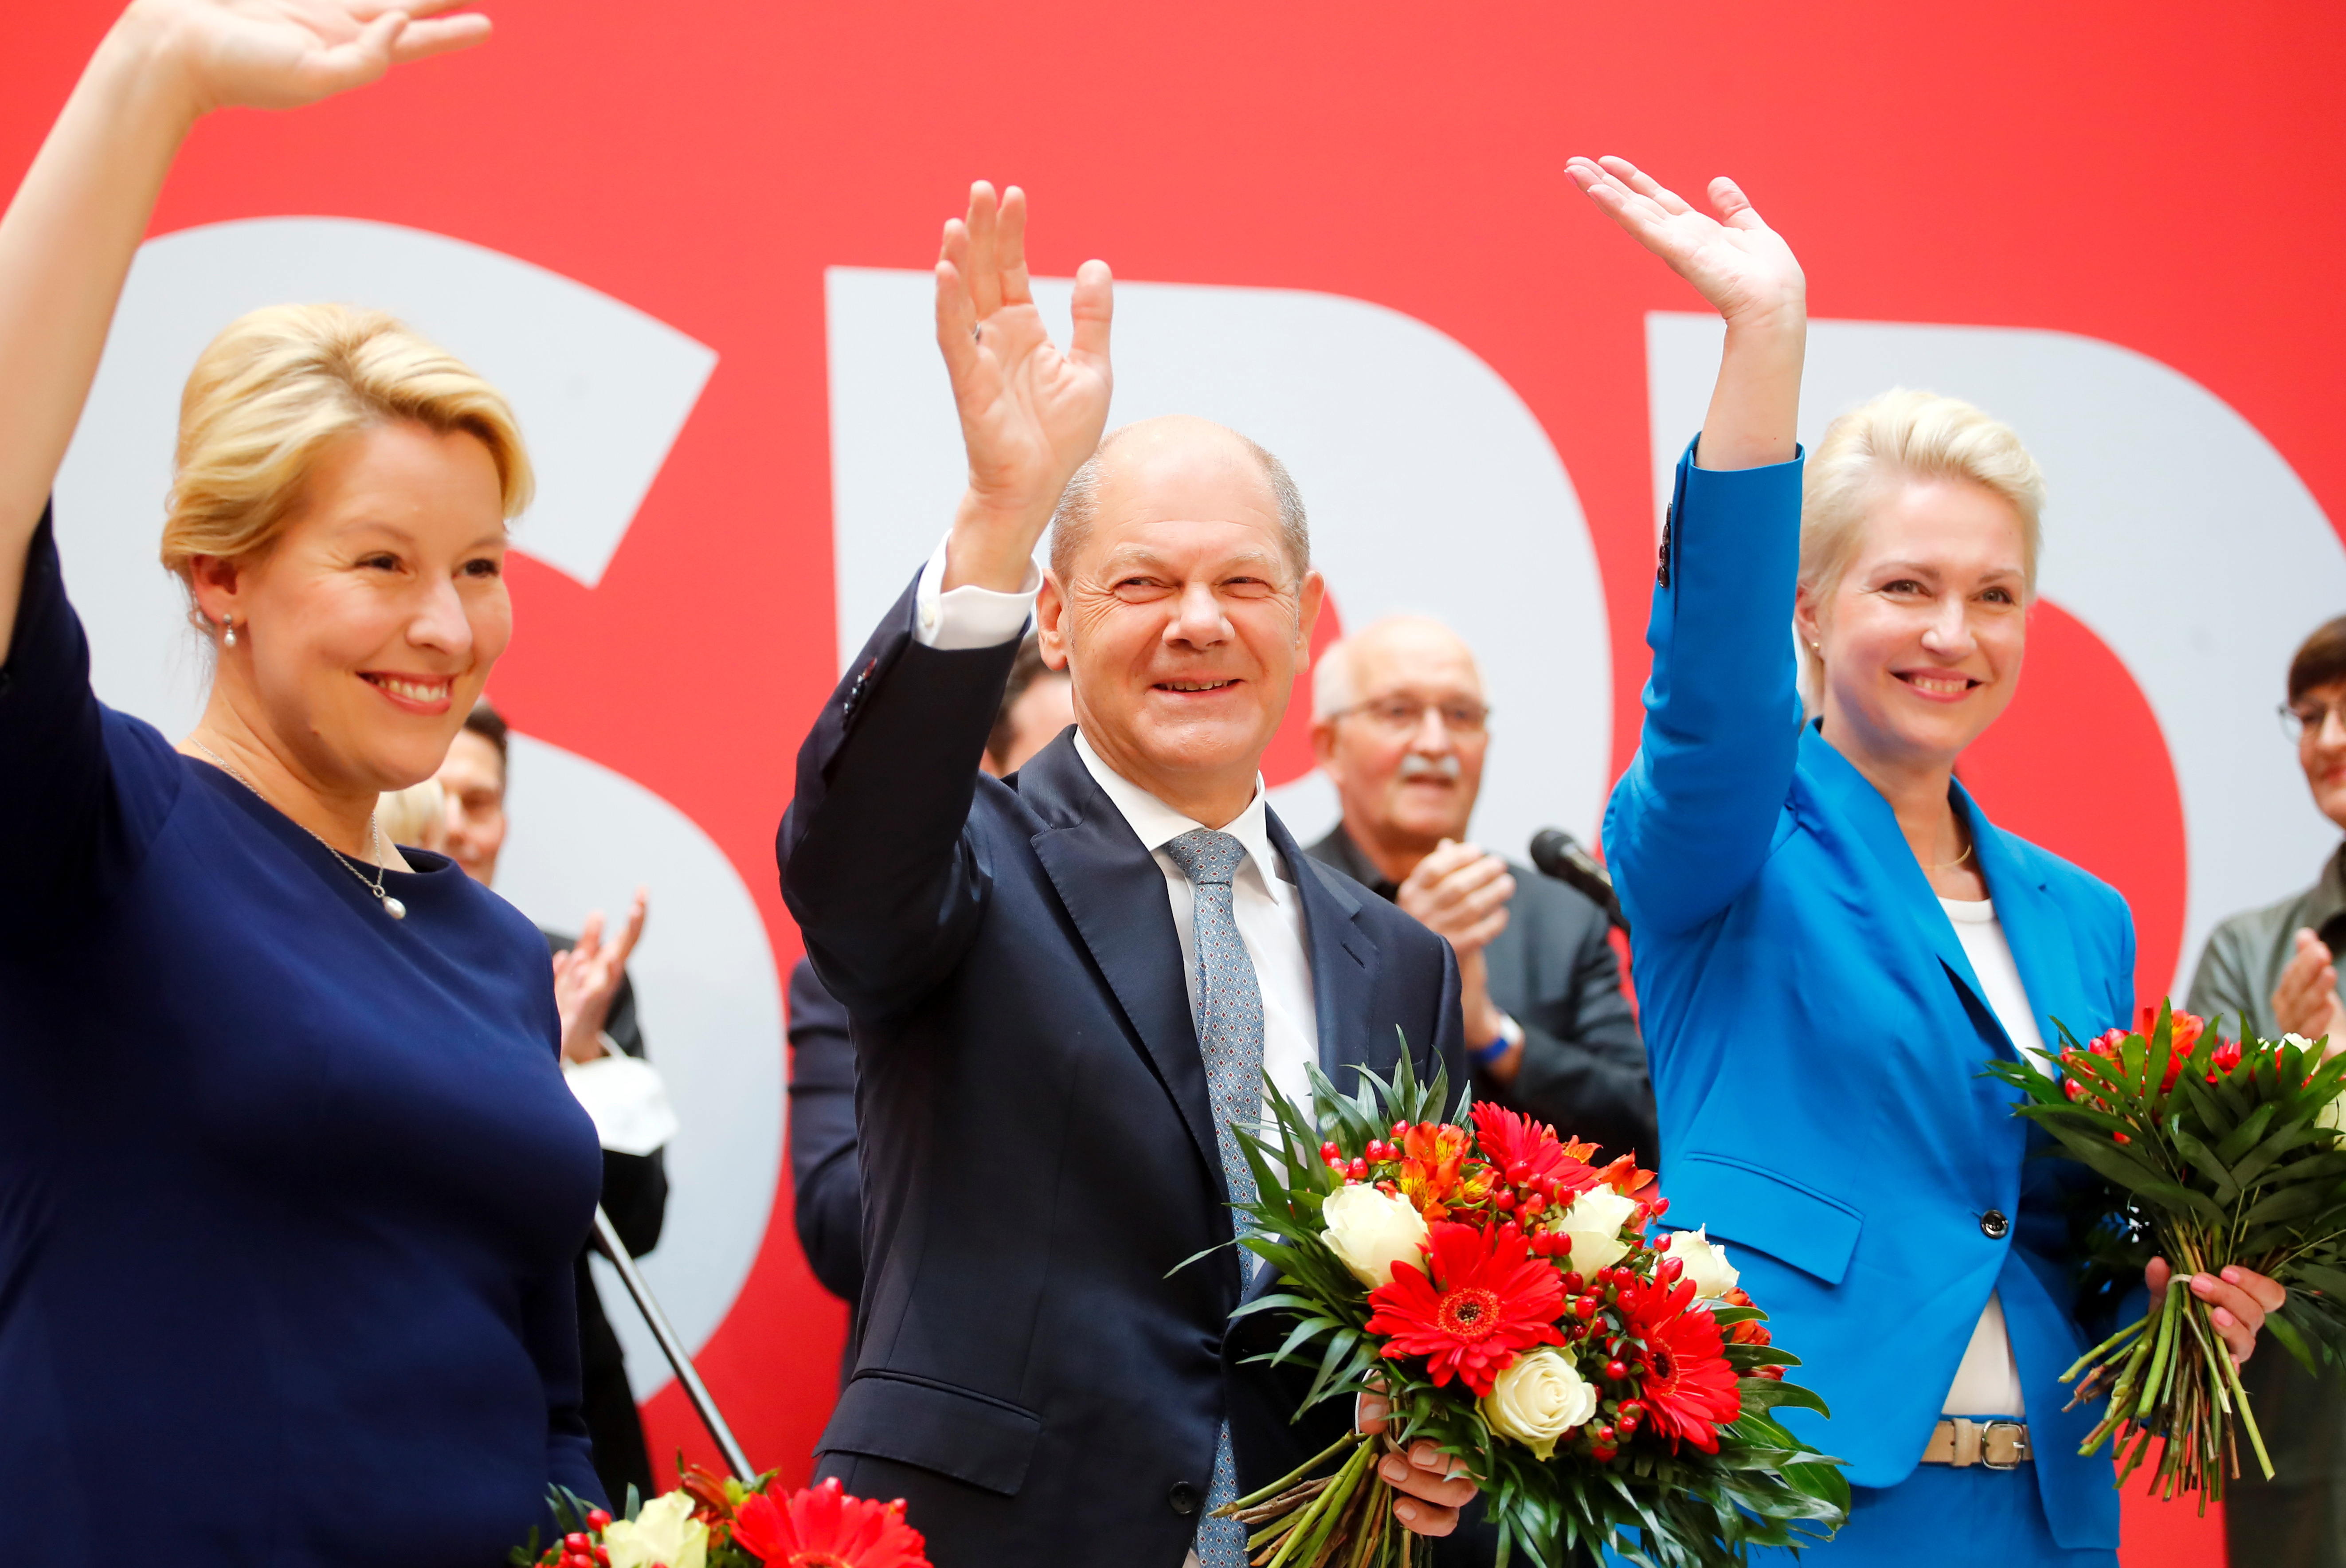 Social Democratic Party (SPD) leader and top candidate for chancellor Olaf Scholz, Mecklenburg-Western Pomerania state Prime Minister Manuela Schwesig and SPD member Franziska Giffey wave as they carry bouquets of flowers at their party leadership meeting, one day after the German general elections, in Berlin, Germany, September 27, 2021. REUTERS/Wolfgang Rattay